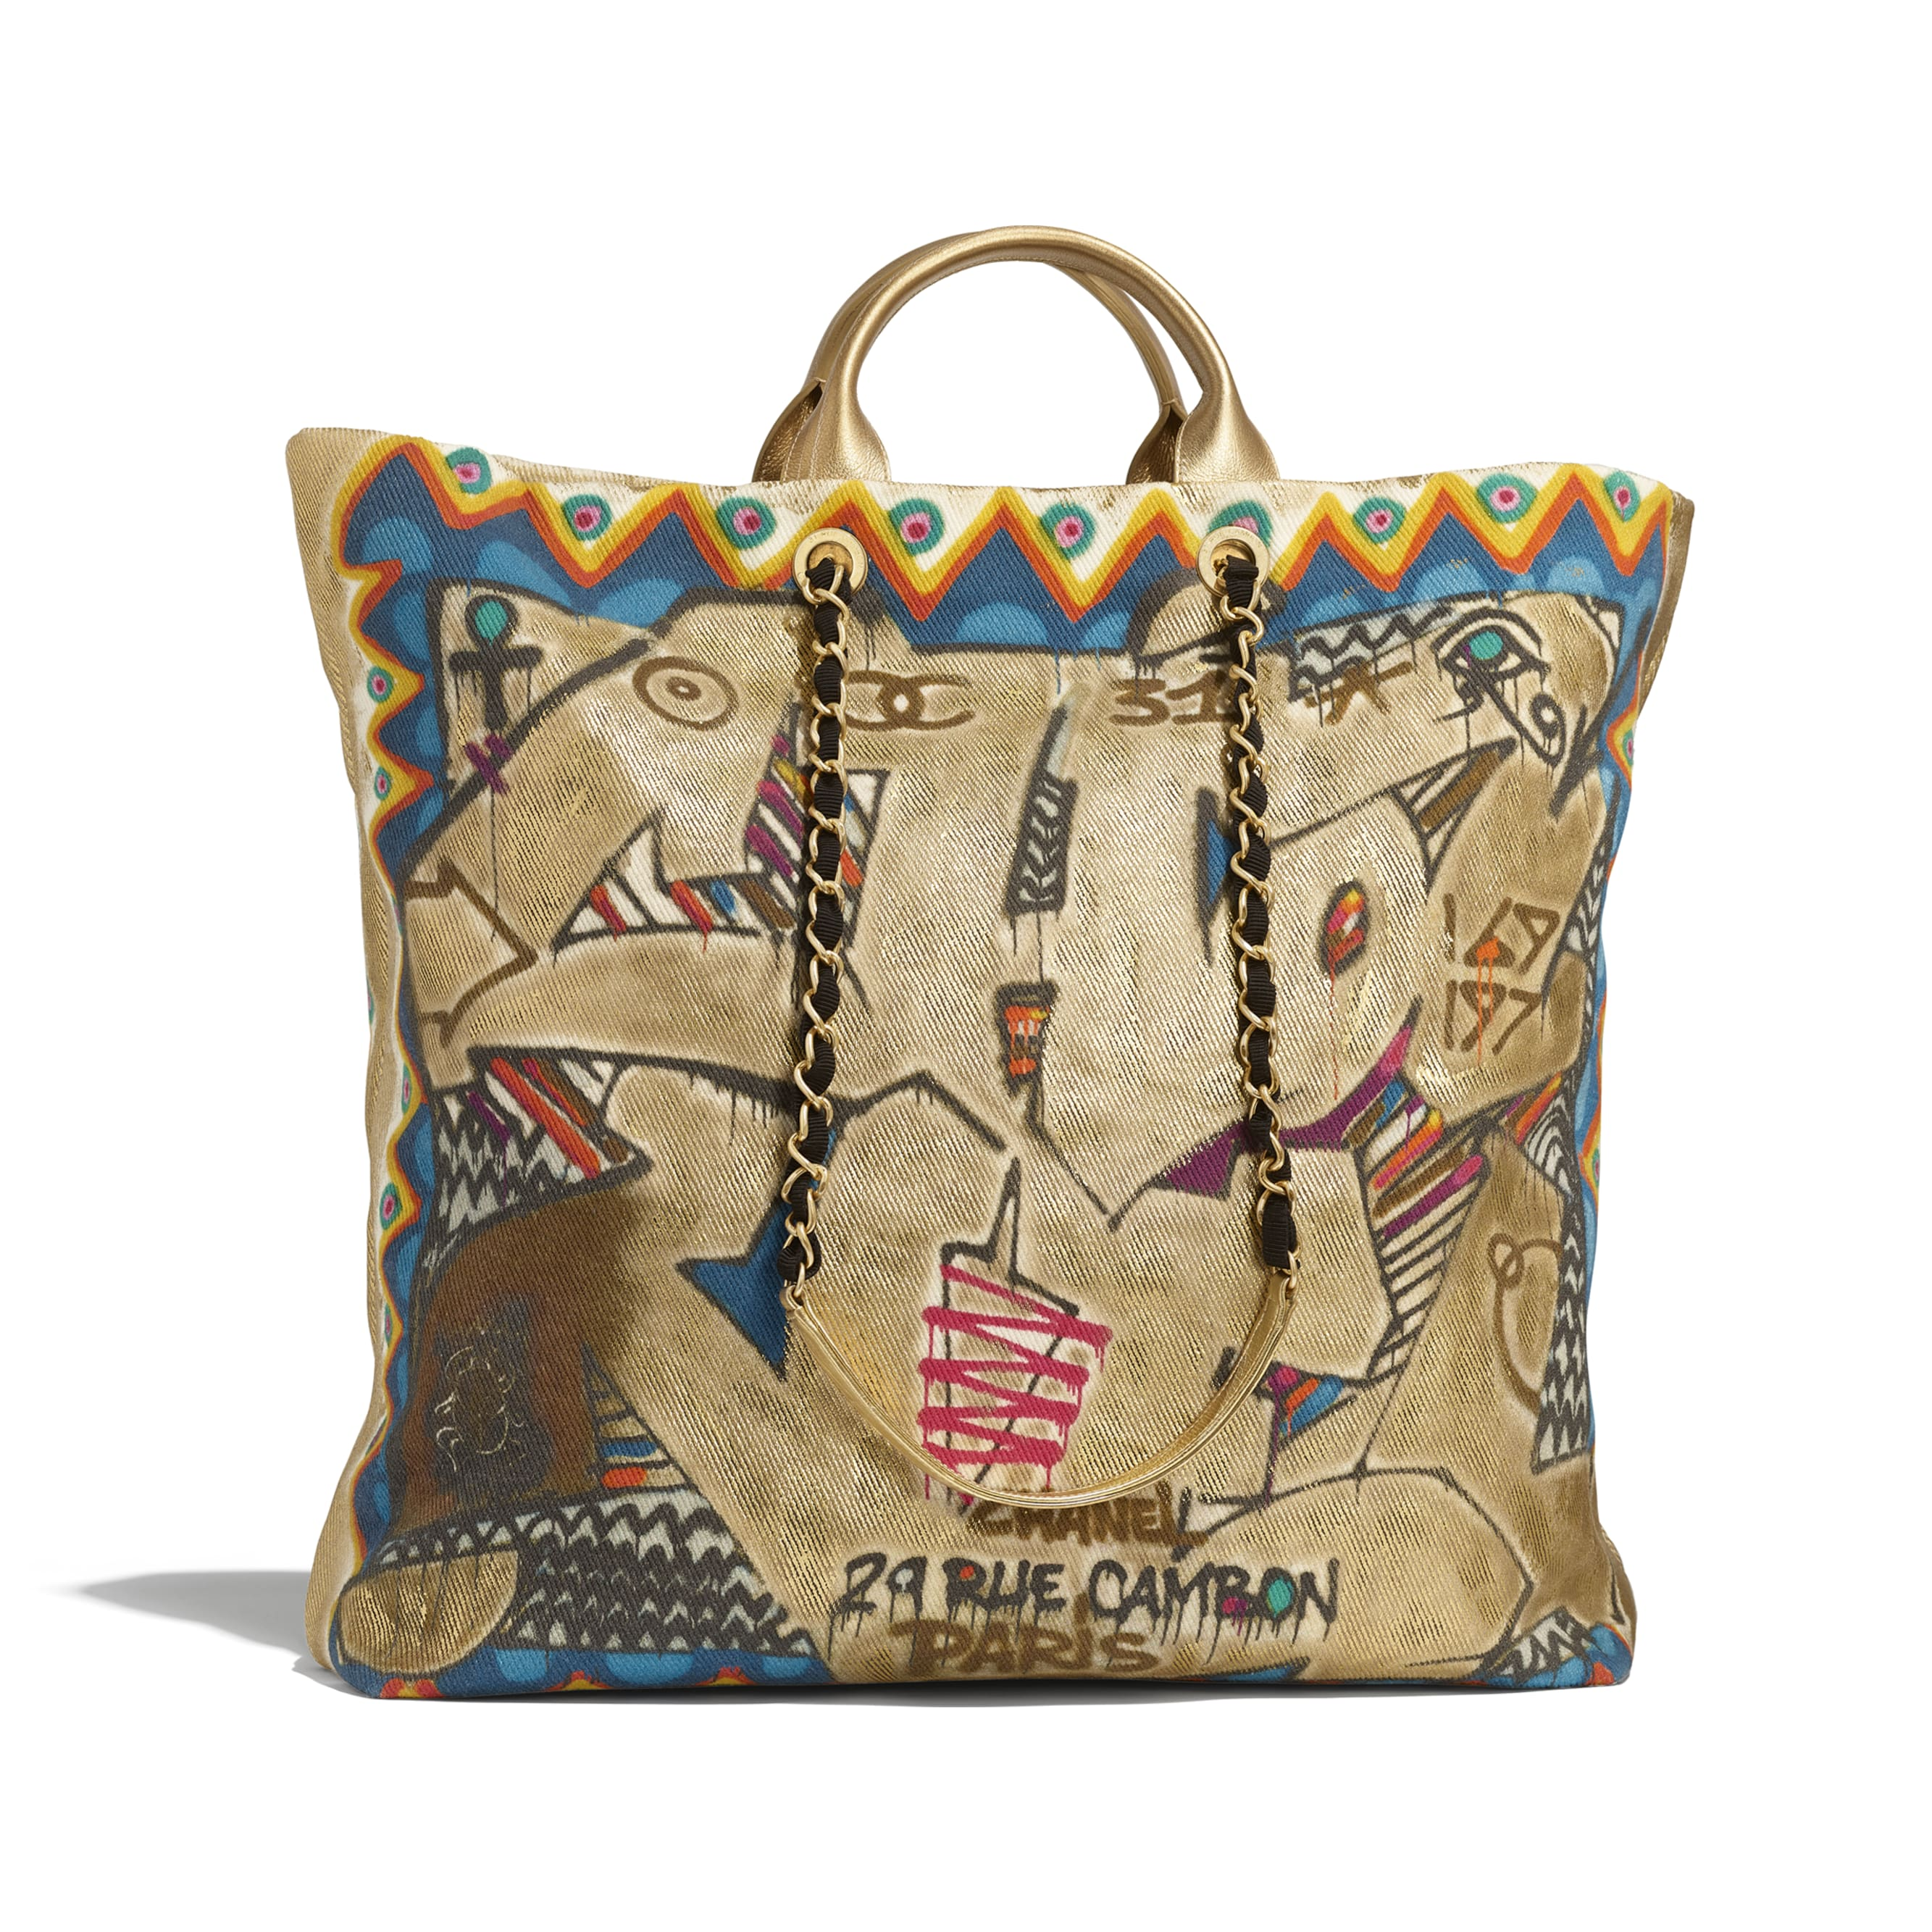 Maxi Shopping Bag - Multicolor - Calfskin, Cotton & Gold-Tone Metal - Alternative view - see standard sized version